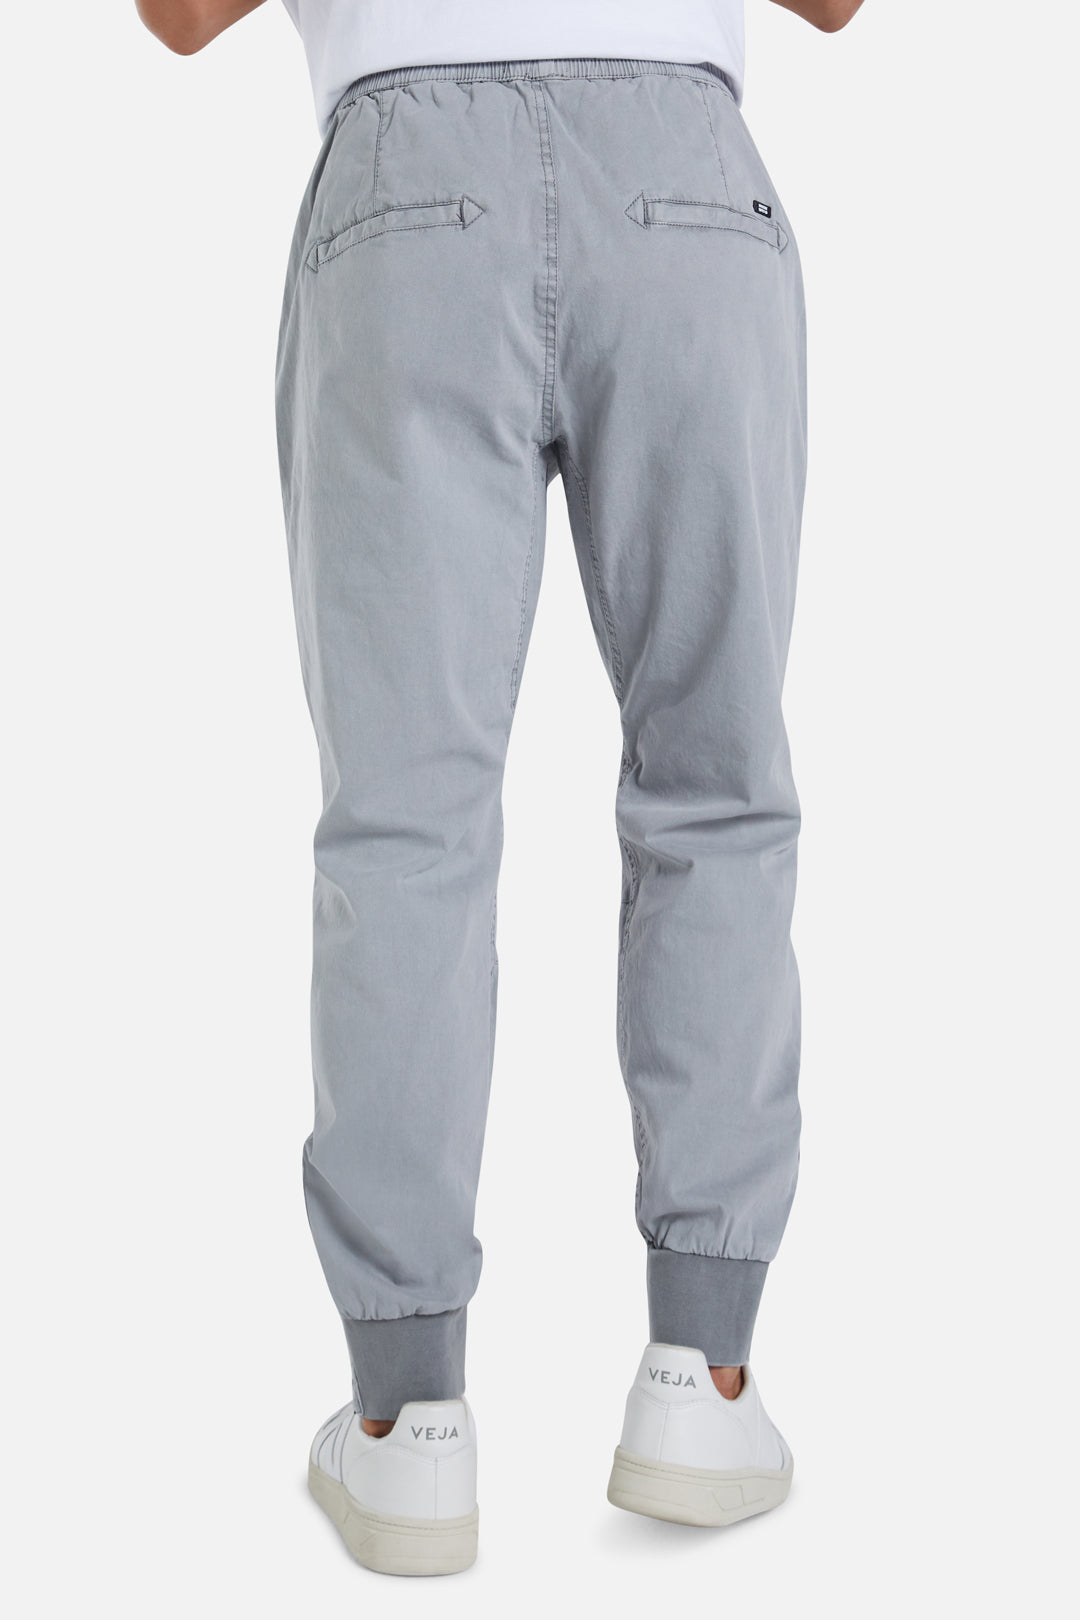 The New Hasting Pant - Cement 20